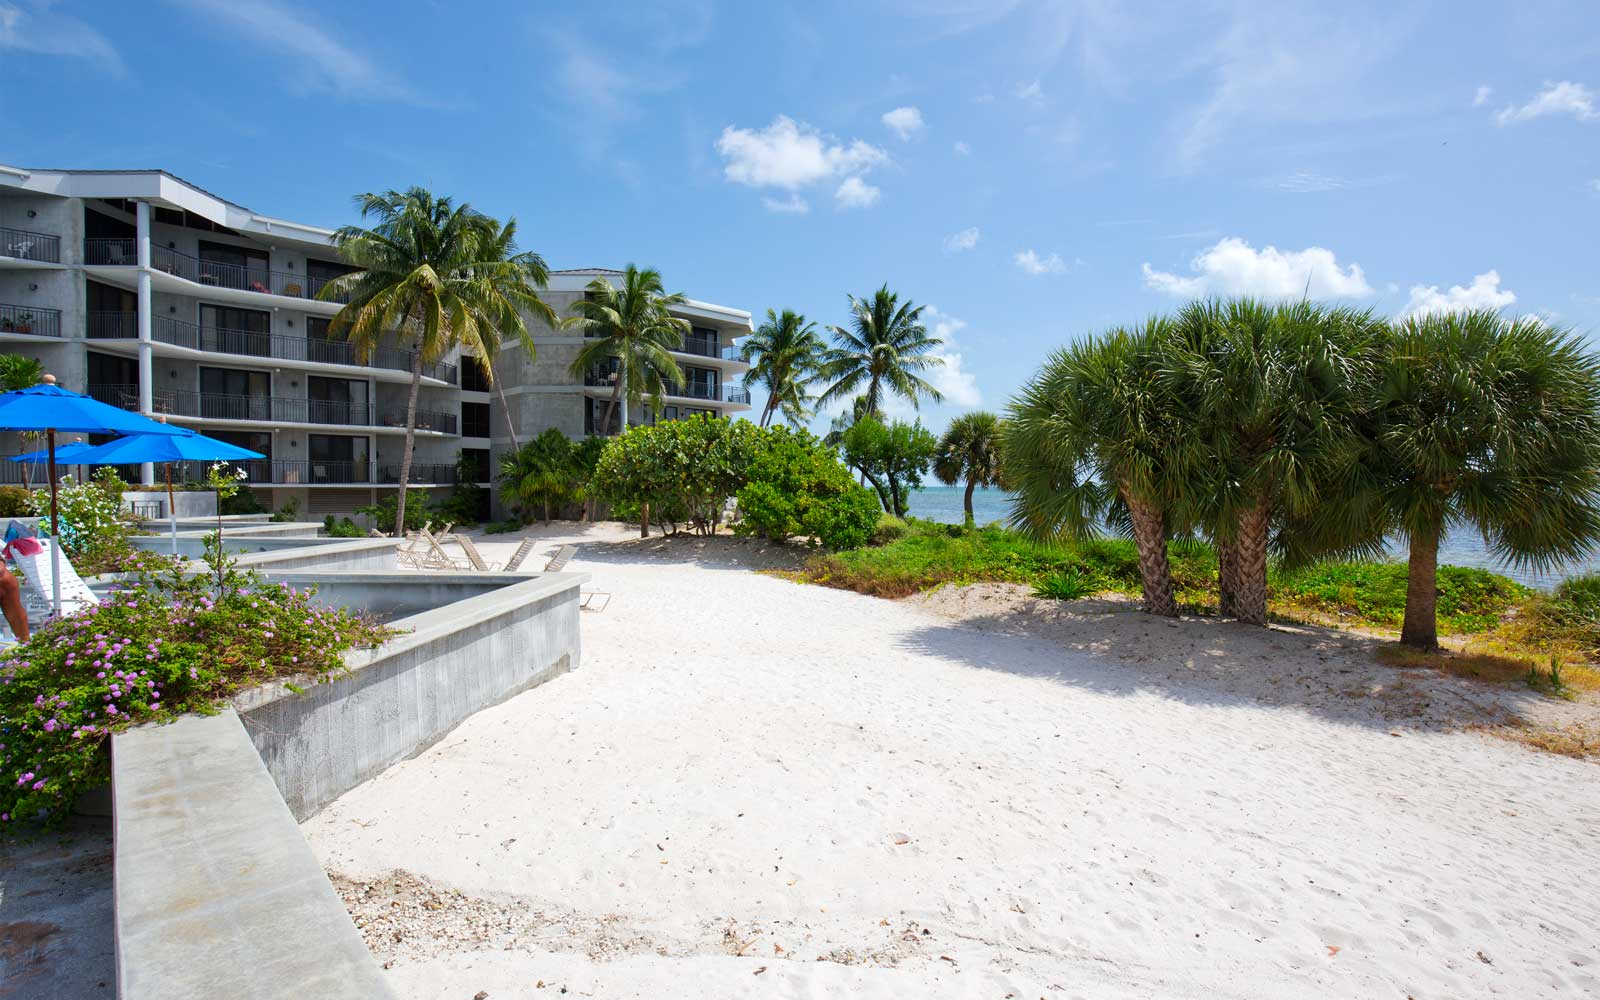 7 of the Best Value Airbnbs in Key West